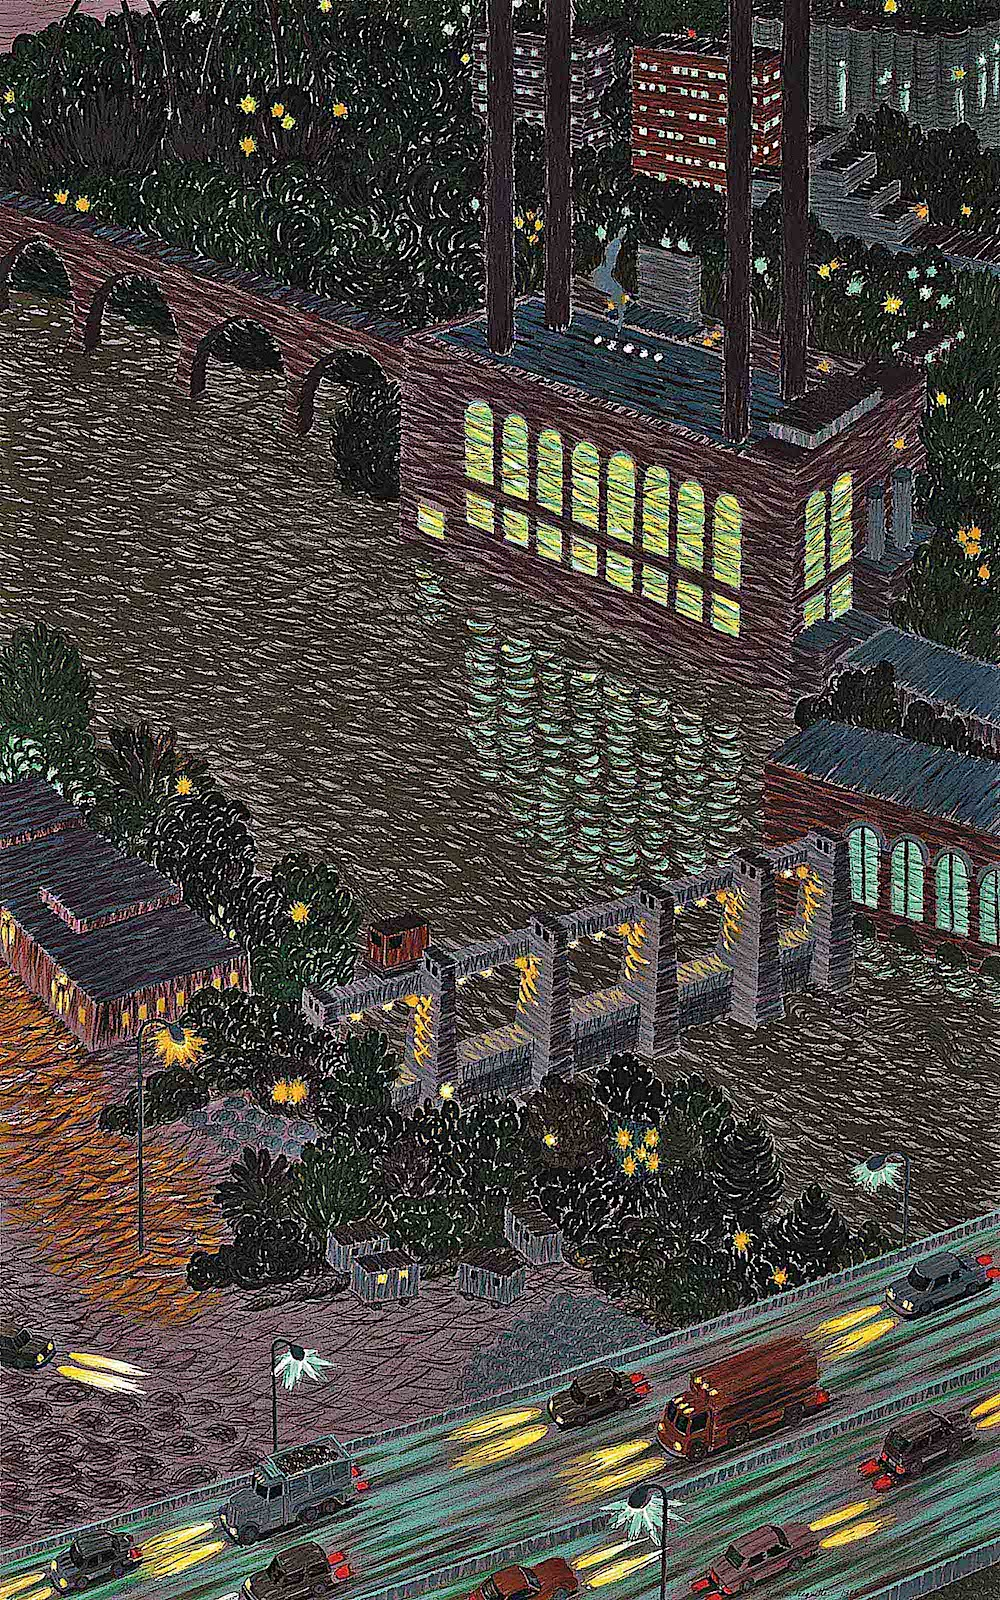 Yvonne Jacquette art, a big city at night from an aerial view